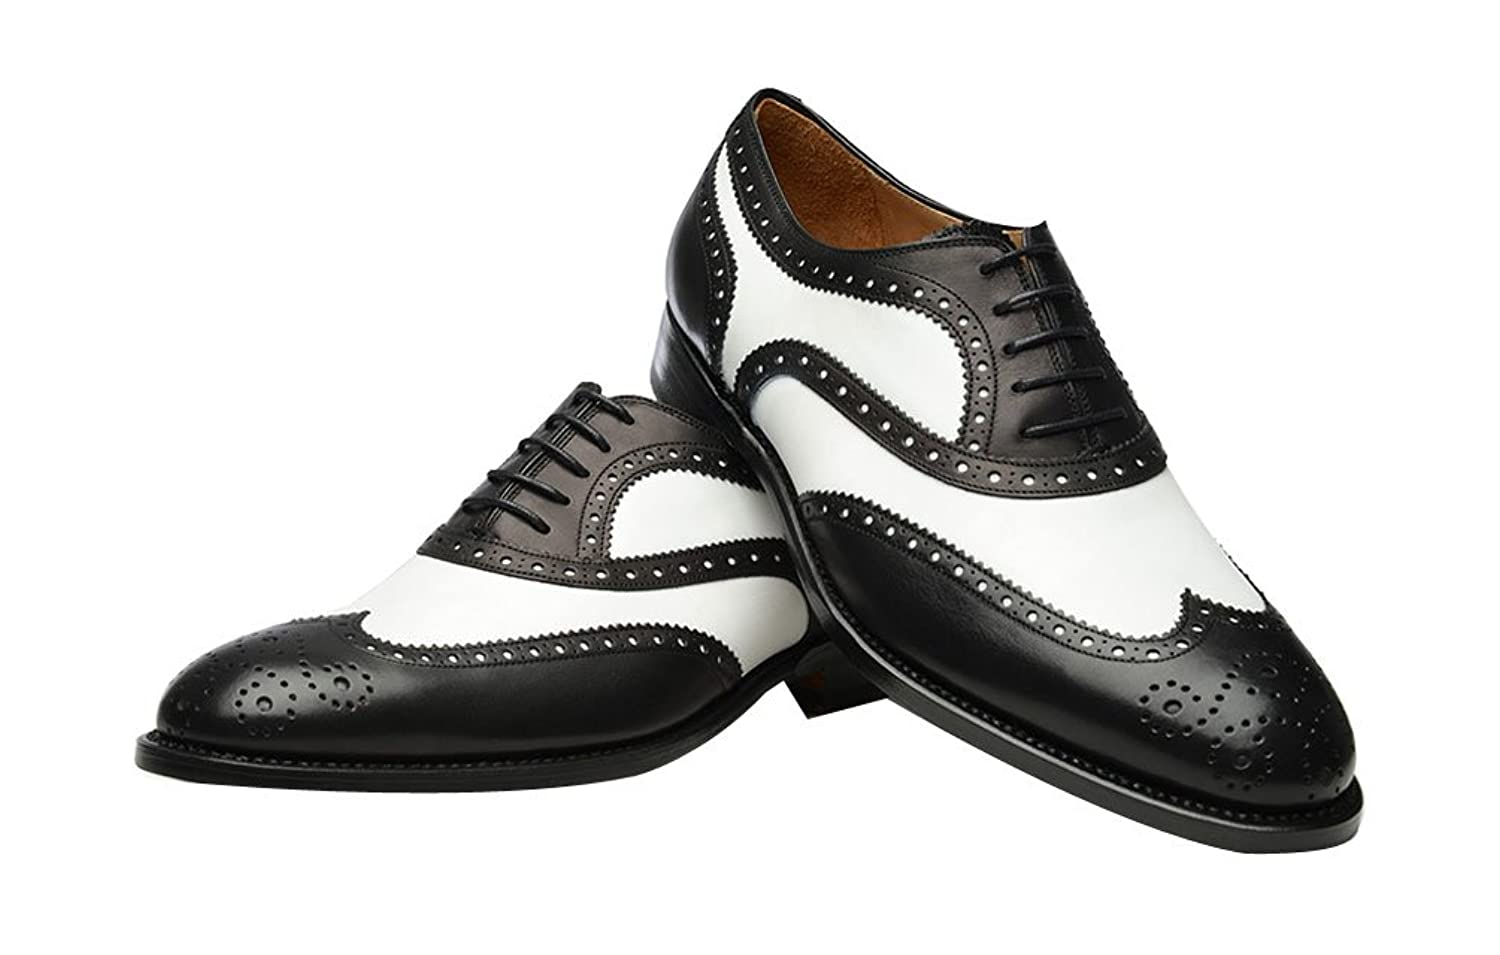 Great Gatsby White Suit- Get the Leonardo DiCaprio Look ROYAL WIND Geninue Leather Spectator Shoes Mens Black White Lace up Wing Tip Perforated Dress Shoes $79.99 AT vintagedancer.com